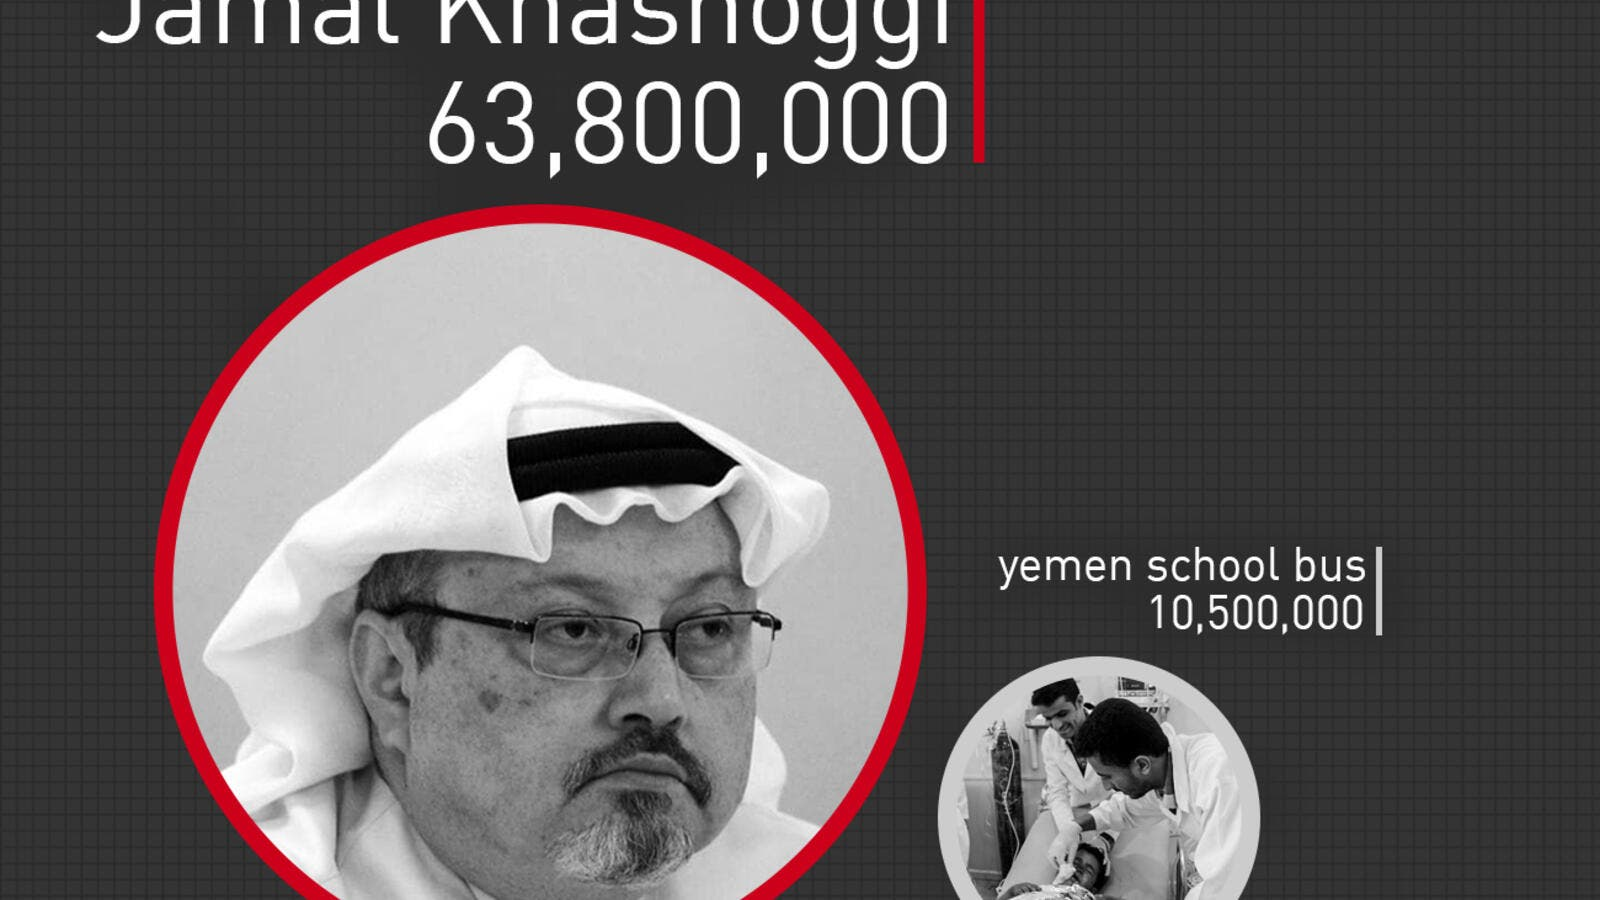 Visualization of the total google results for each search term, Jamal Khashoggi and Yemen school bus. (Rami Khoury/Al Bawaba)